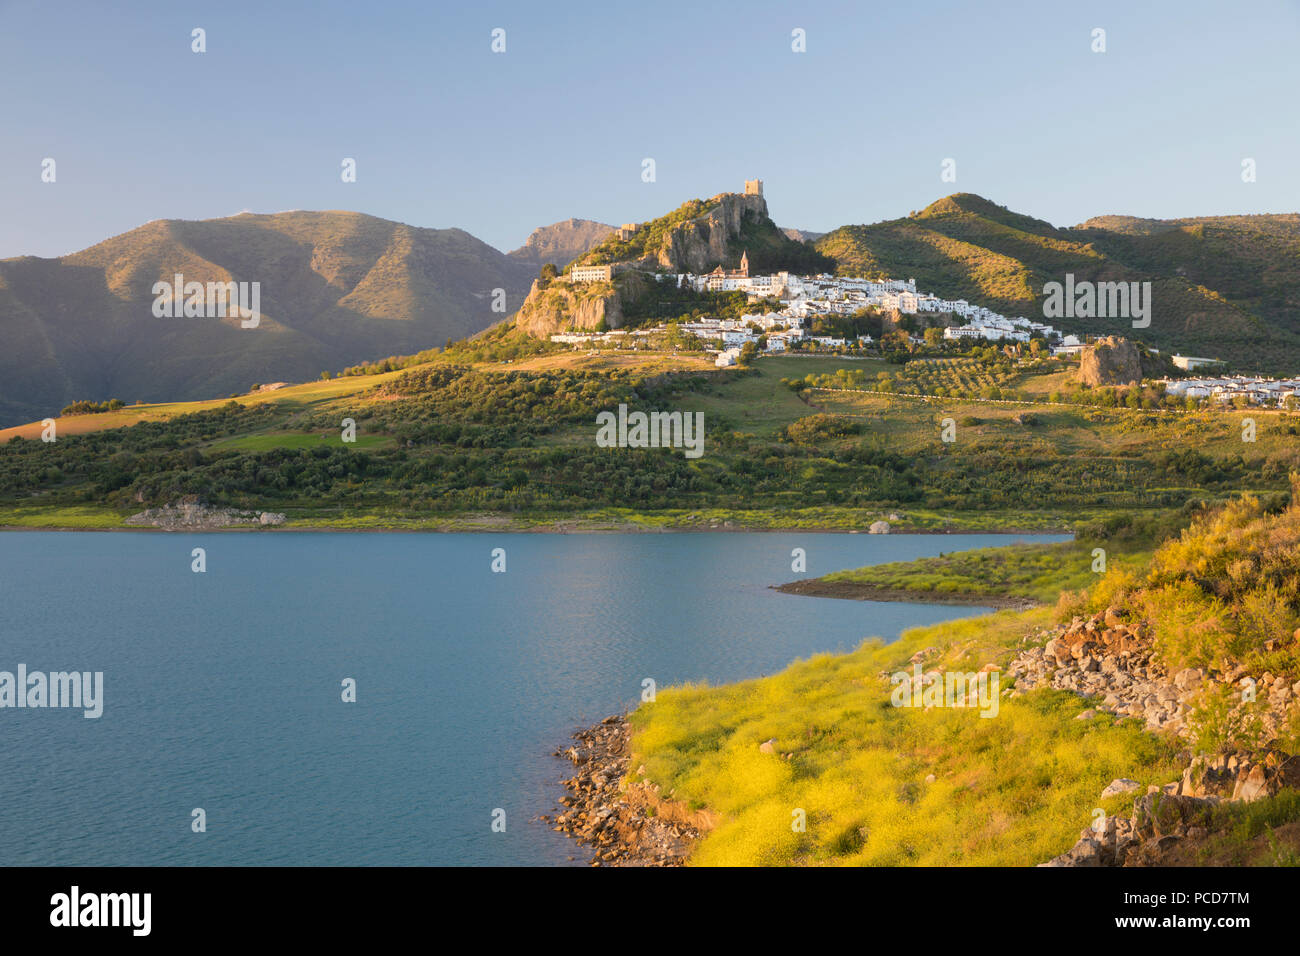 Moorish castle above white village and reservoir, Zahara de la Sierra, Sierra de Grazalema Natural Park, Andalucia, Spain, Europe - Stock Image